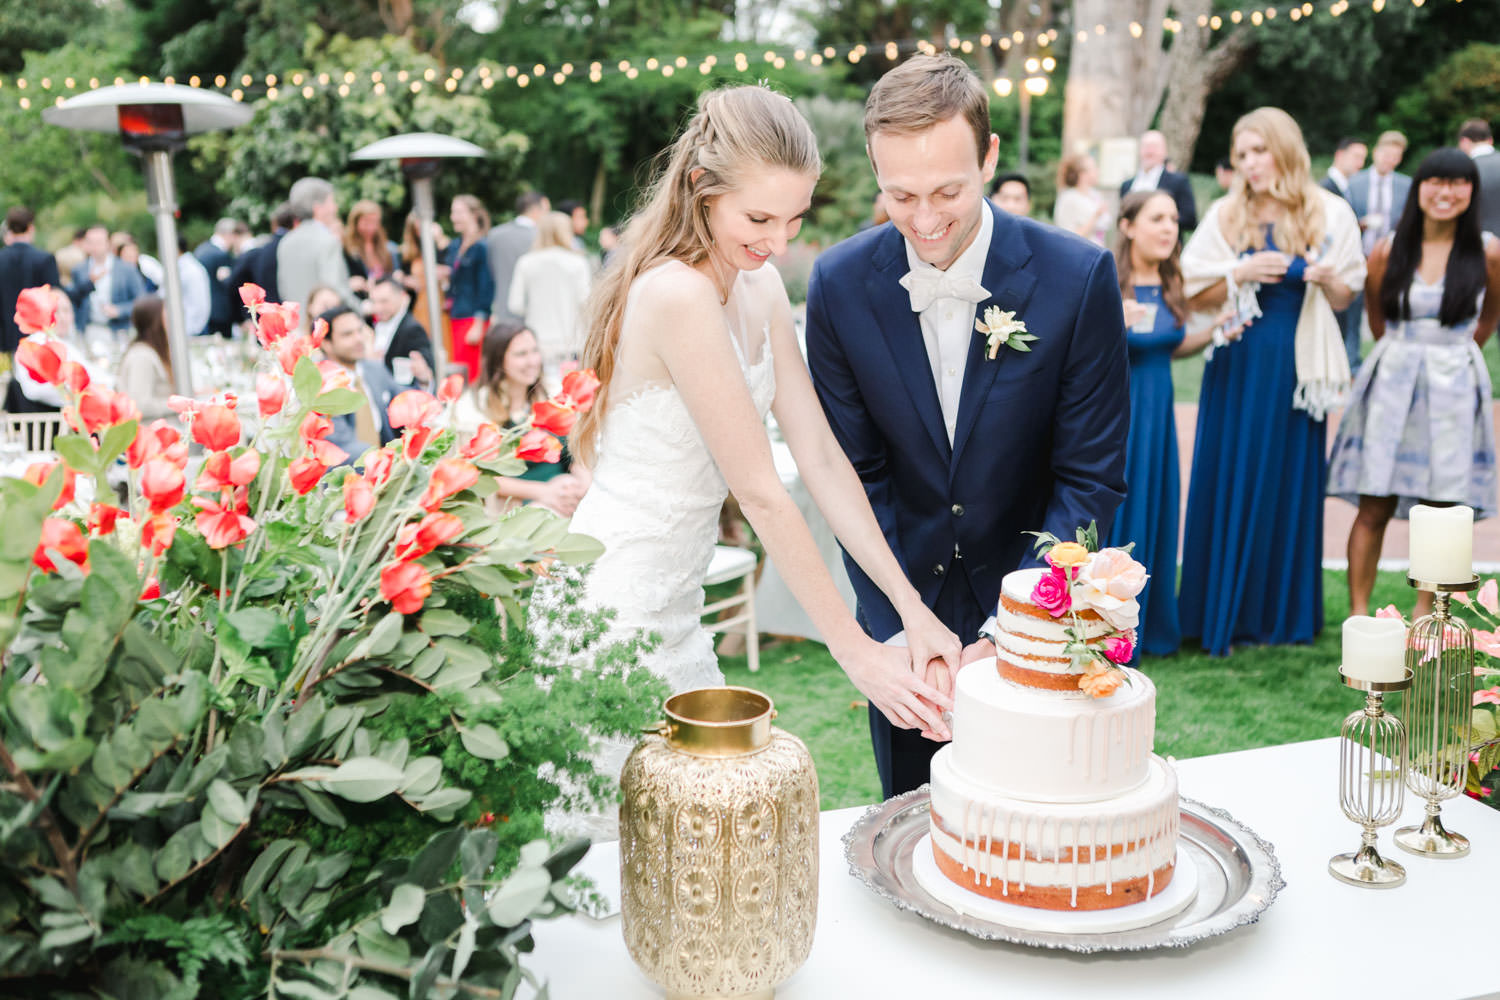 Bride and groom cake cutting at San Diego Botanical Garden, Cavin Elizabeth Photography